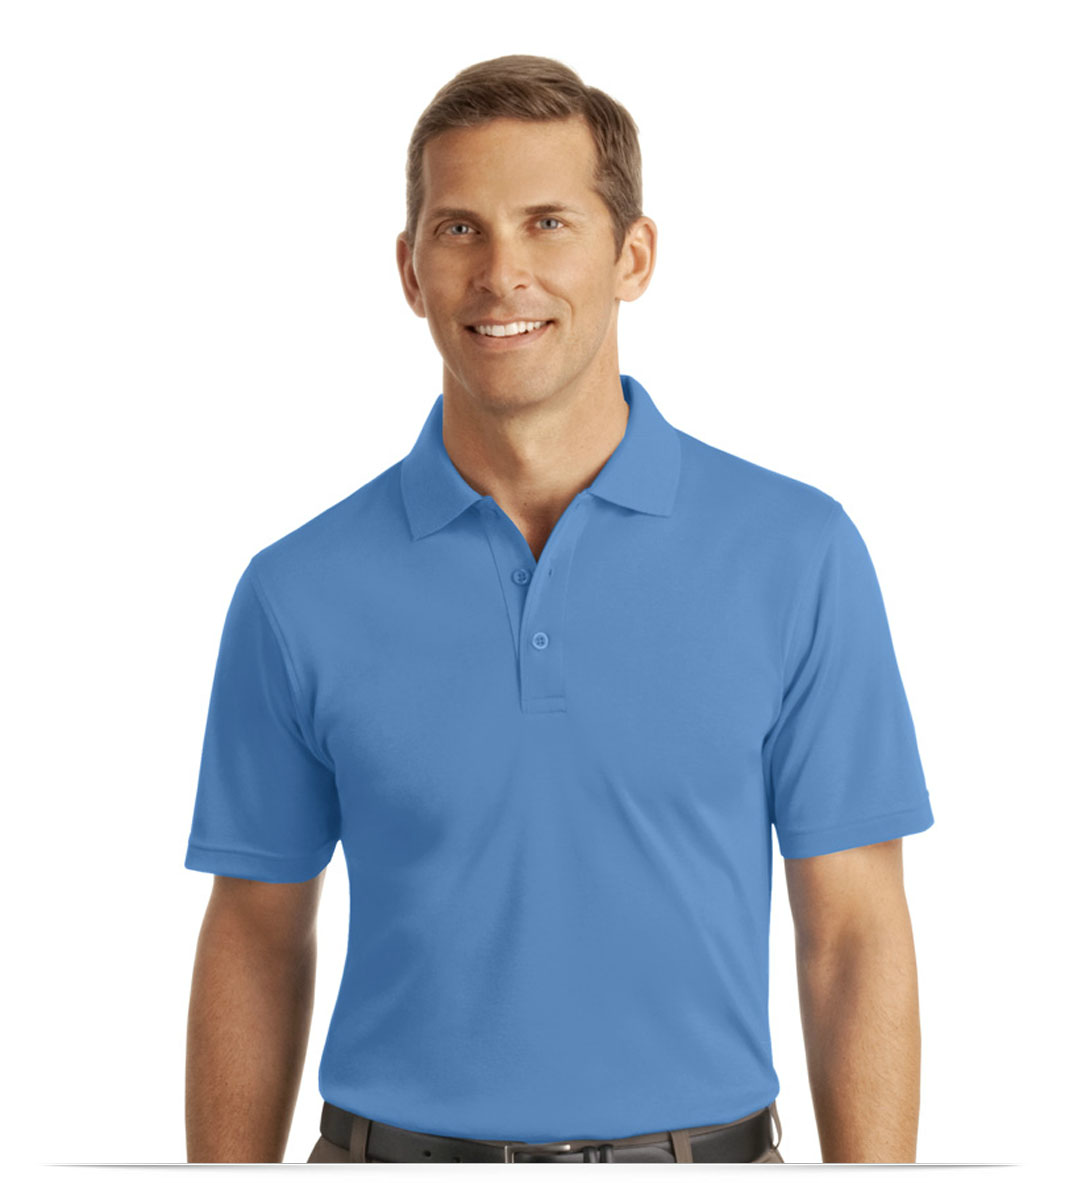 a8b60bea4 Personalized Port Authority Silk Touch Interlock Polo